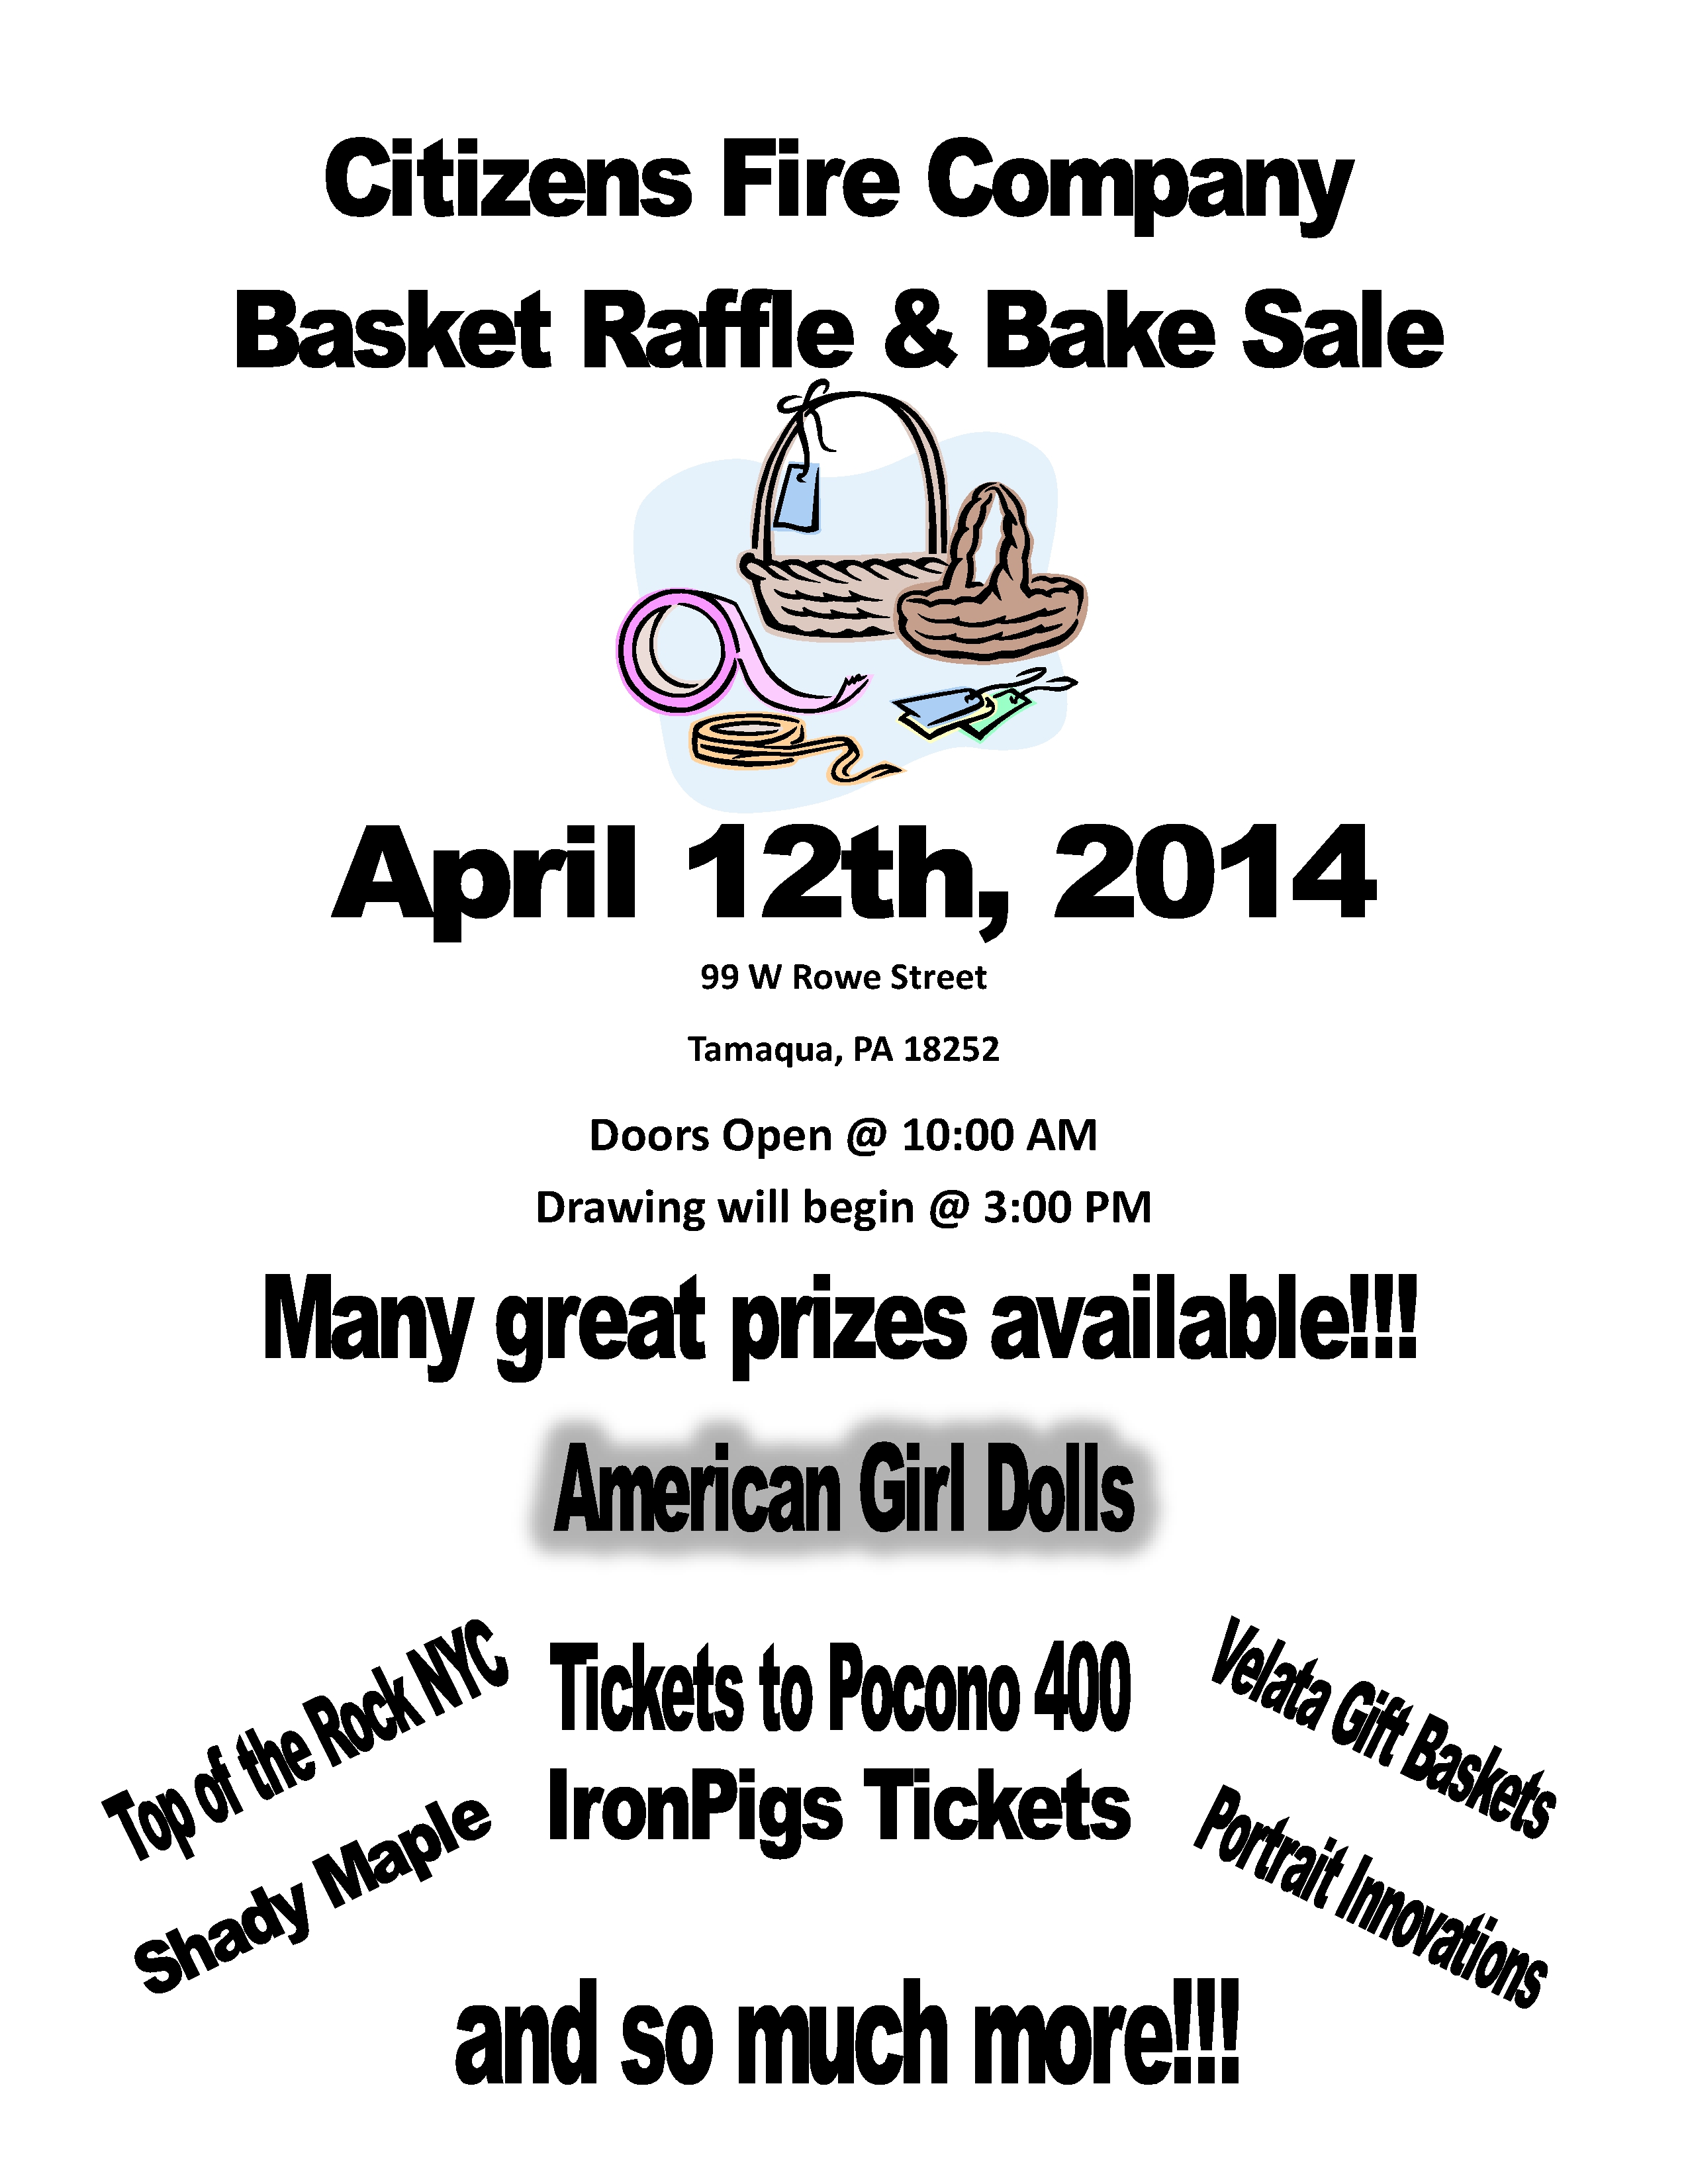 CHINESE AUCTION AND RAFFLE SATURDAY AT CITIZENS FIRE